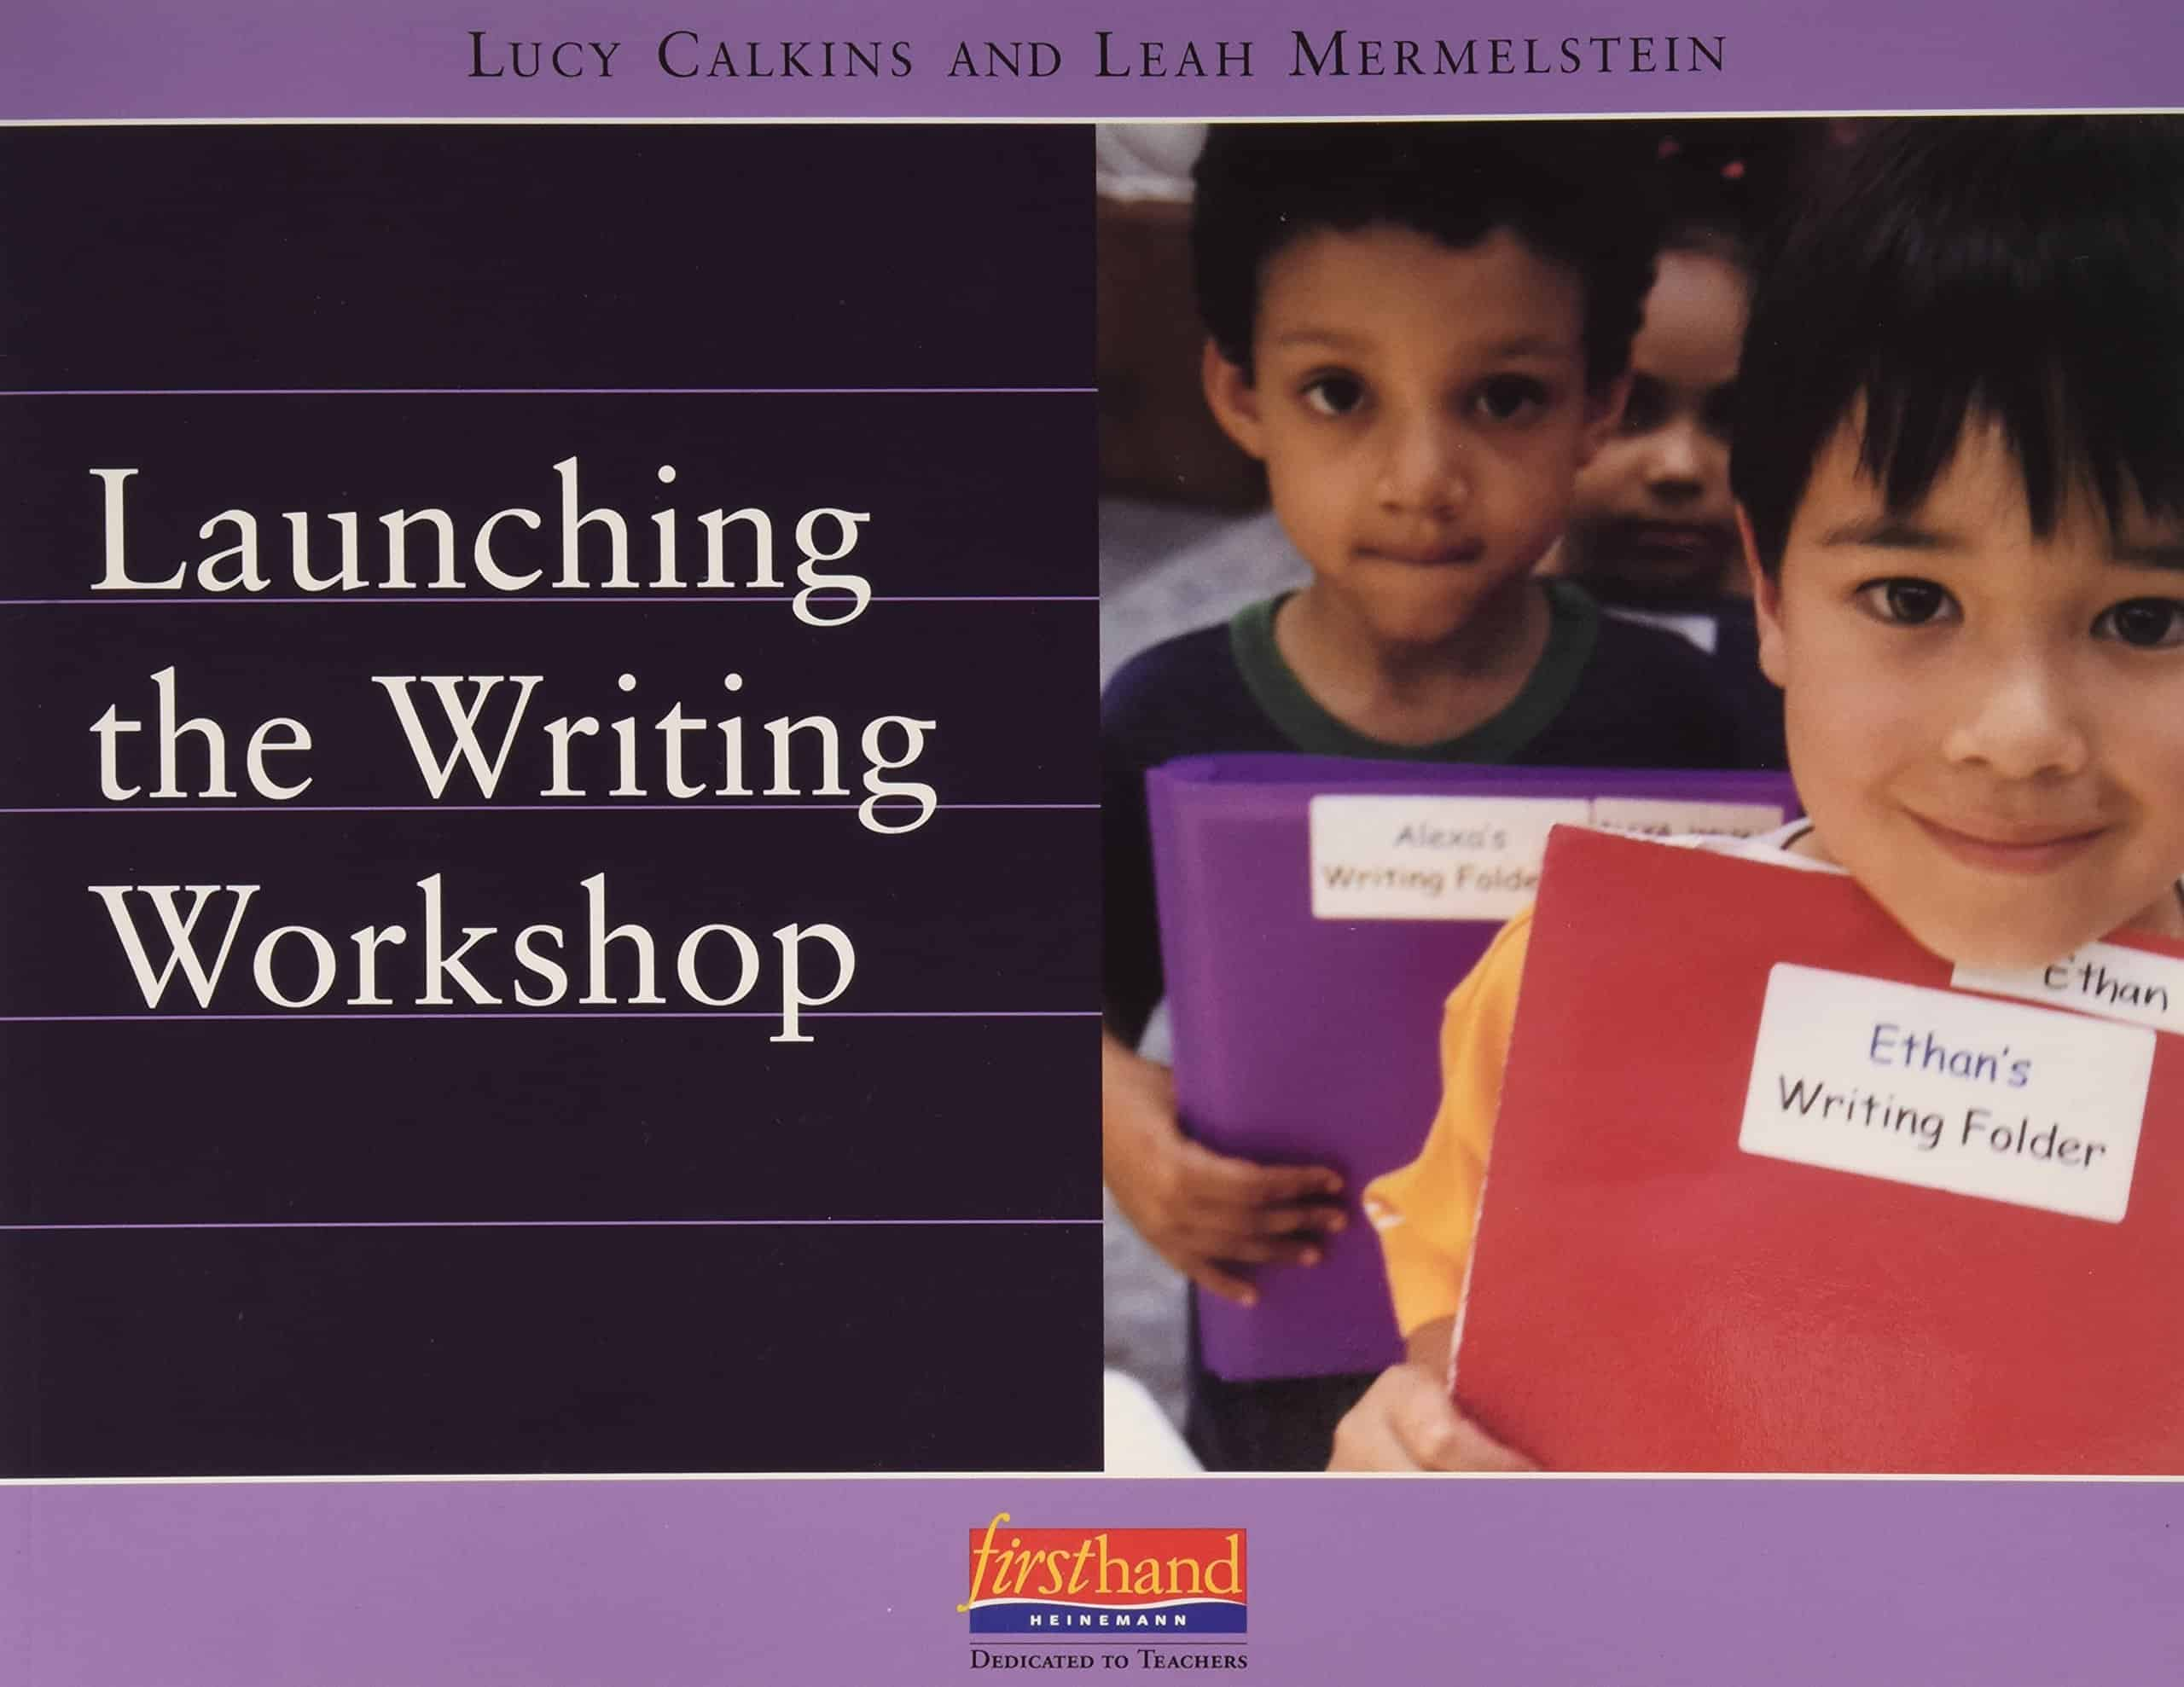 Lucy Calkins Book for launching writer's workshop